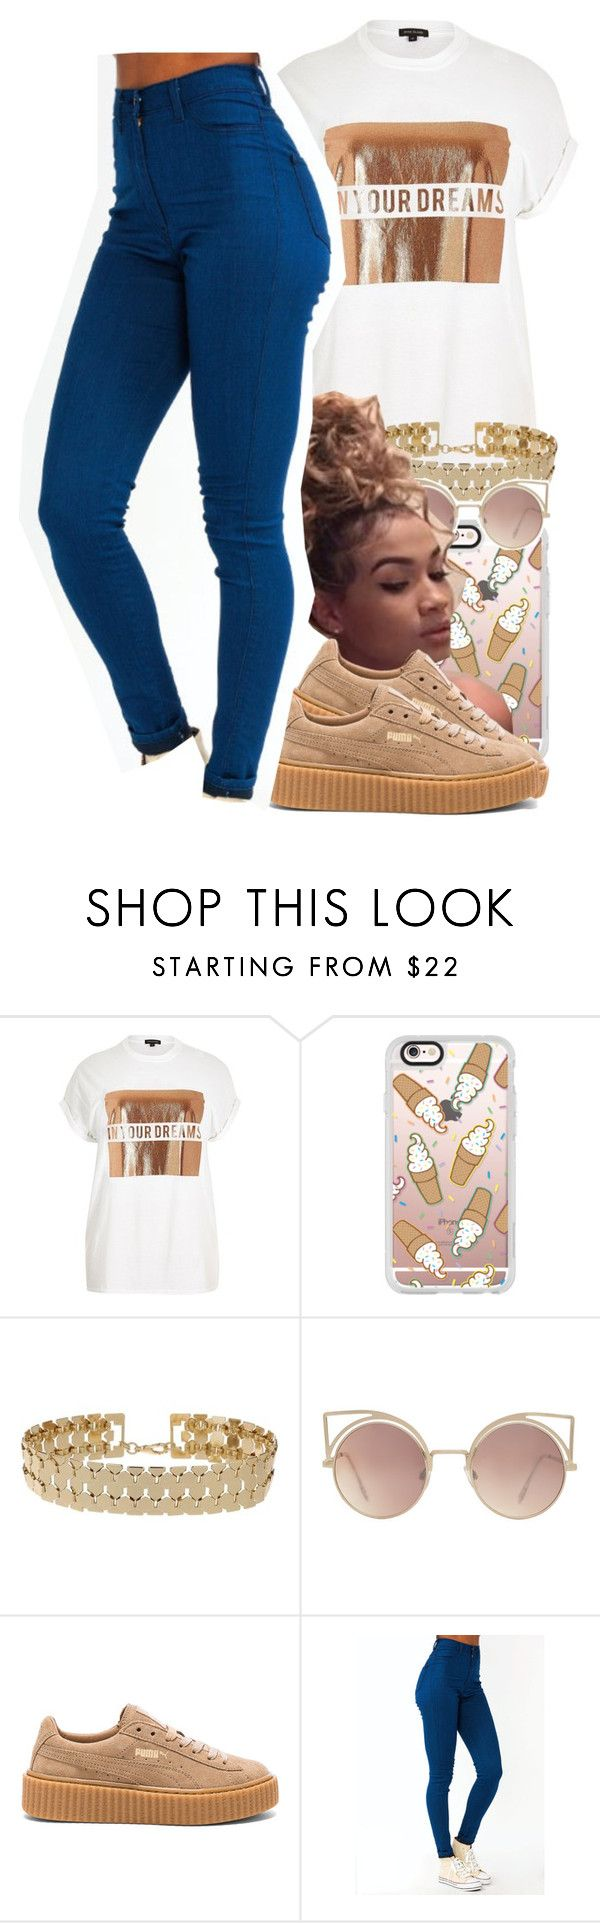 """color code: Tan "" by jchristina ❤ liked on Polyvore featuring River Island, Casetify, Miss Selfridge, MANGO and Puma"